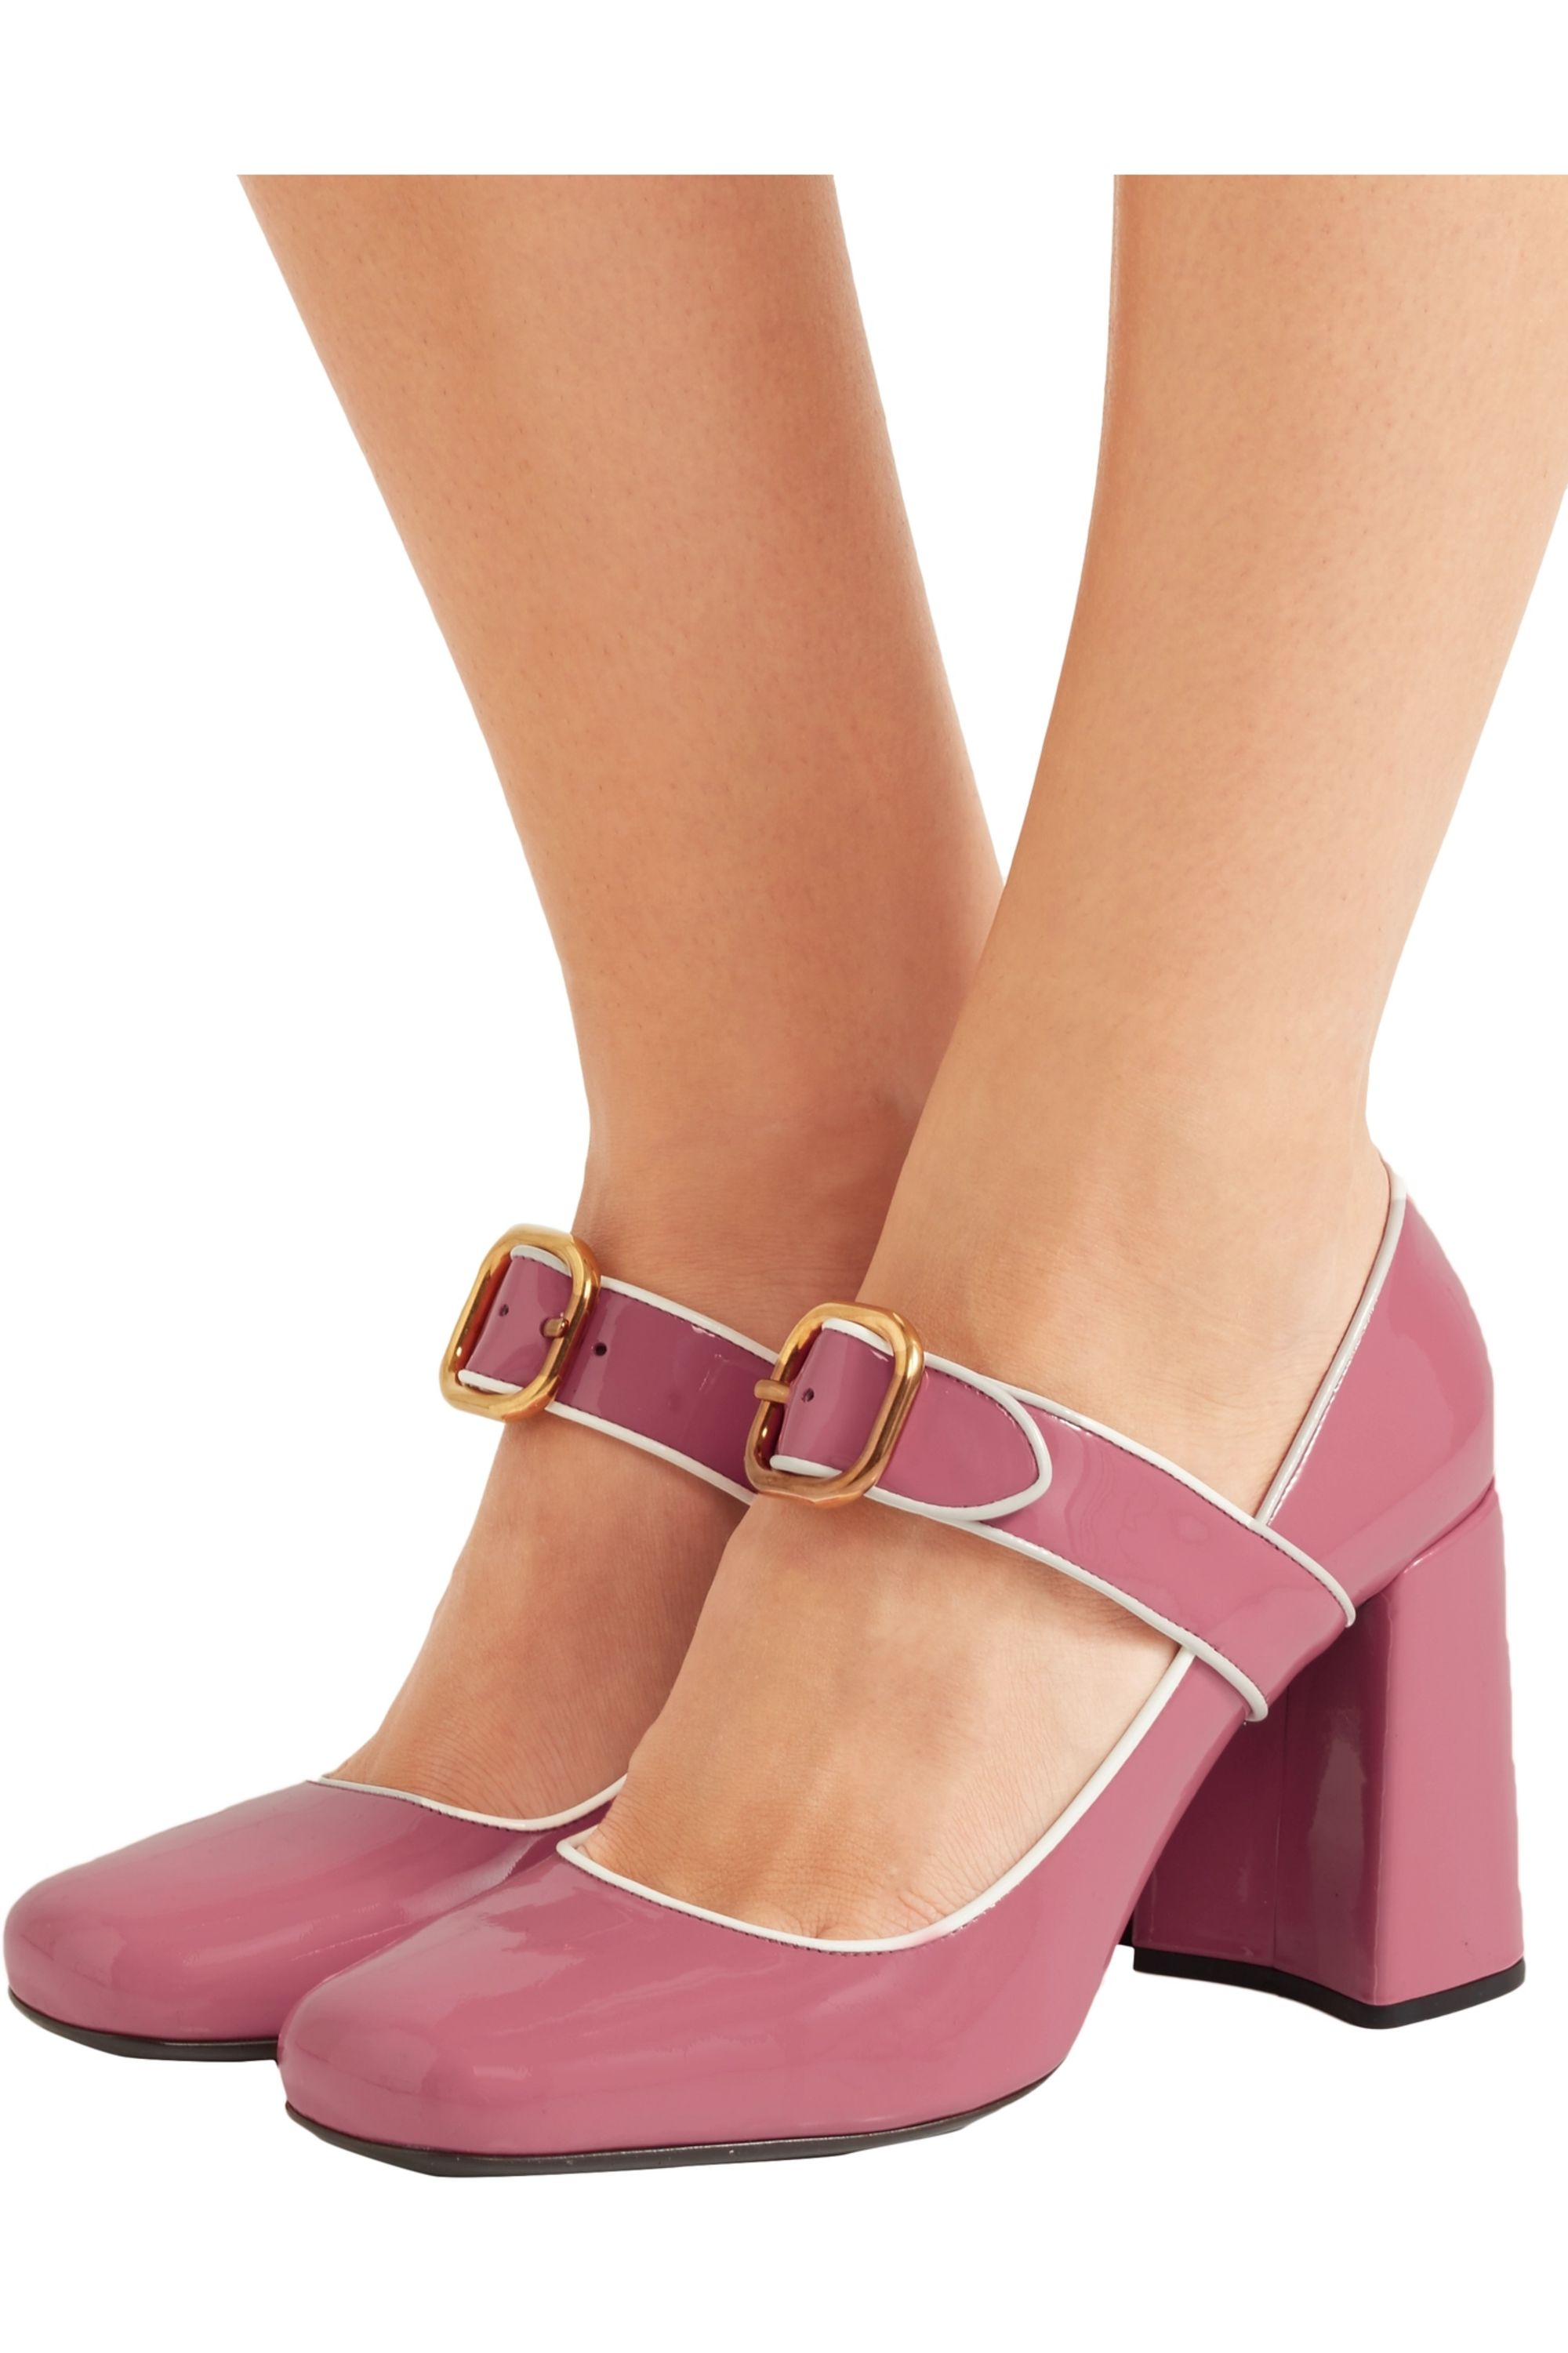 Baby pink Patent-leather Mary Jane